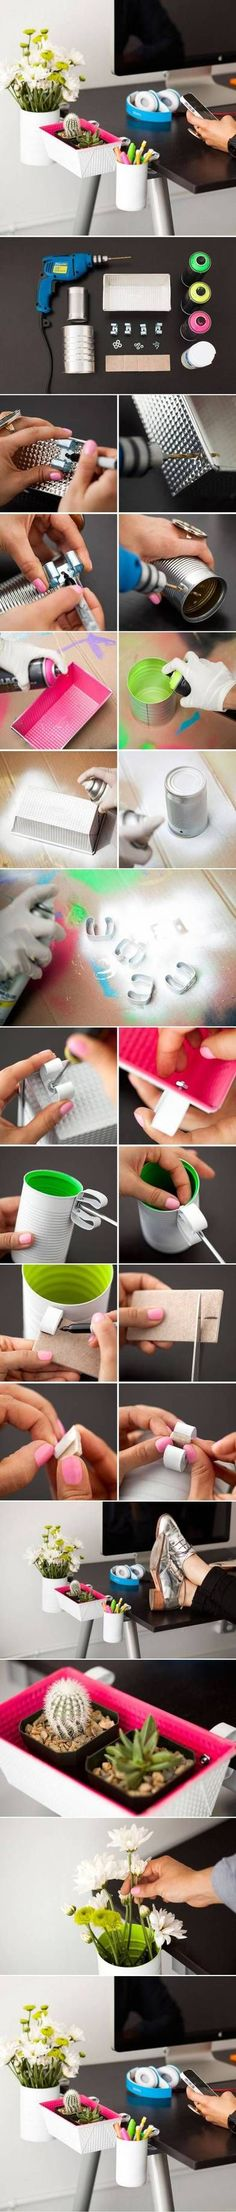 pop color spray paint desk accessories